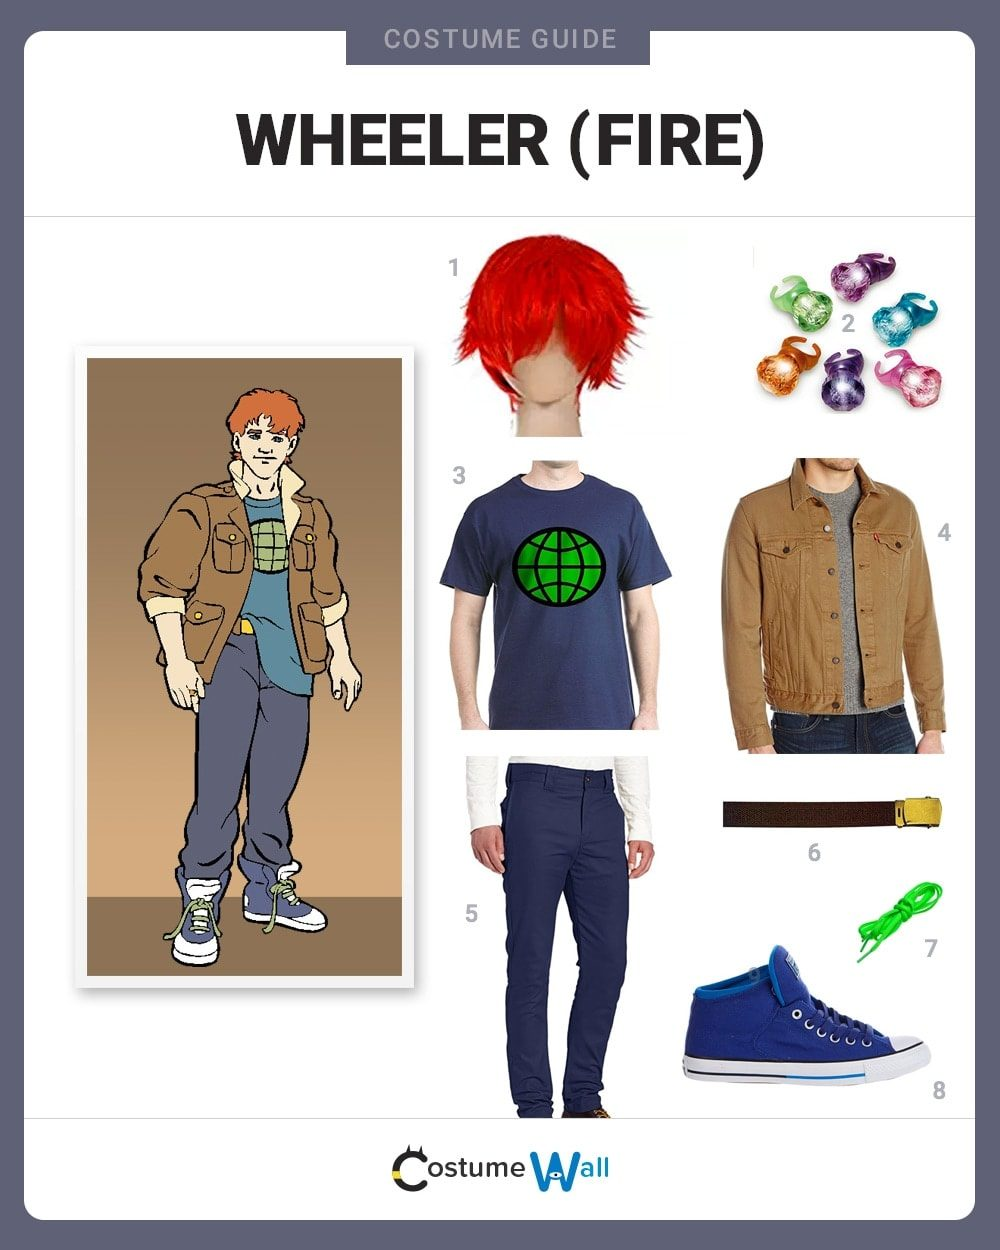 dress like wheeler (fire) costume | halloween and cosplay guides